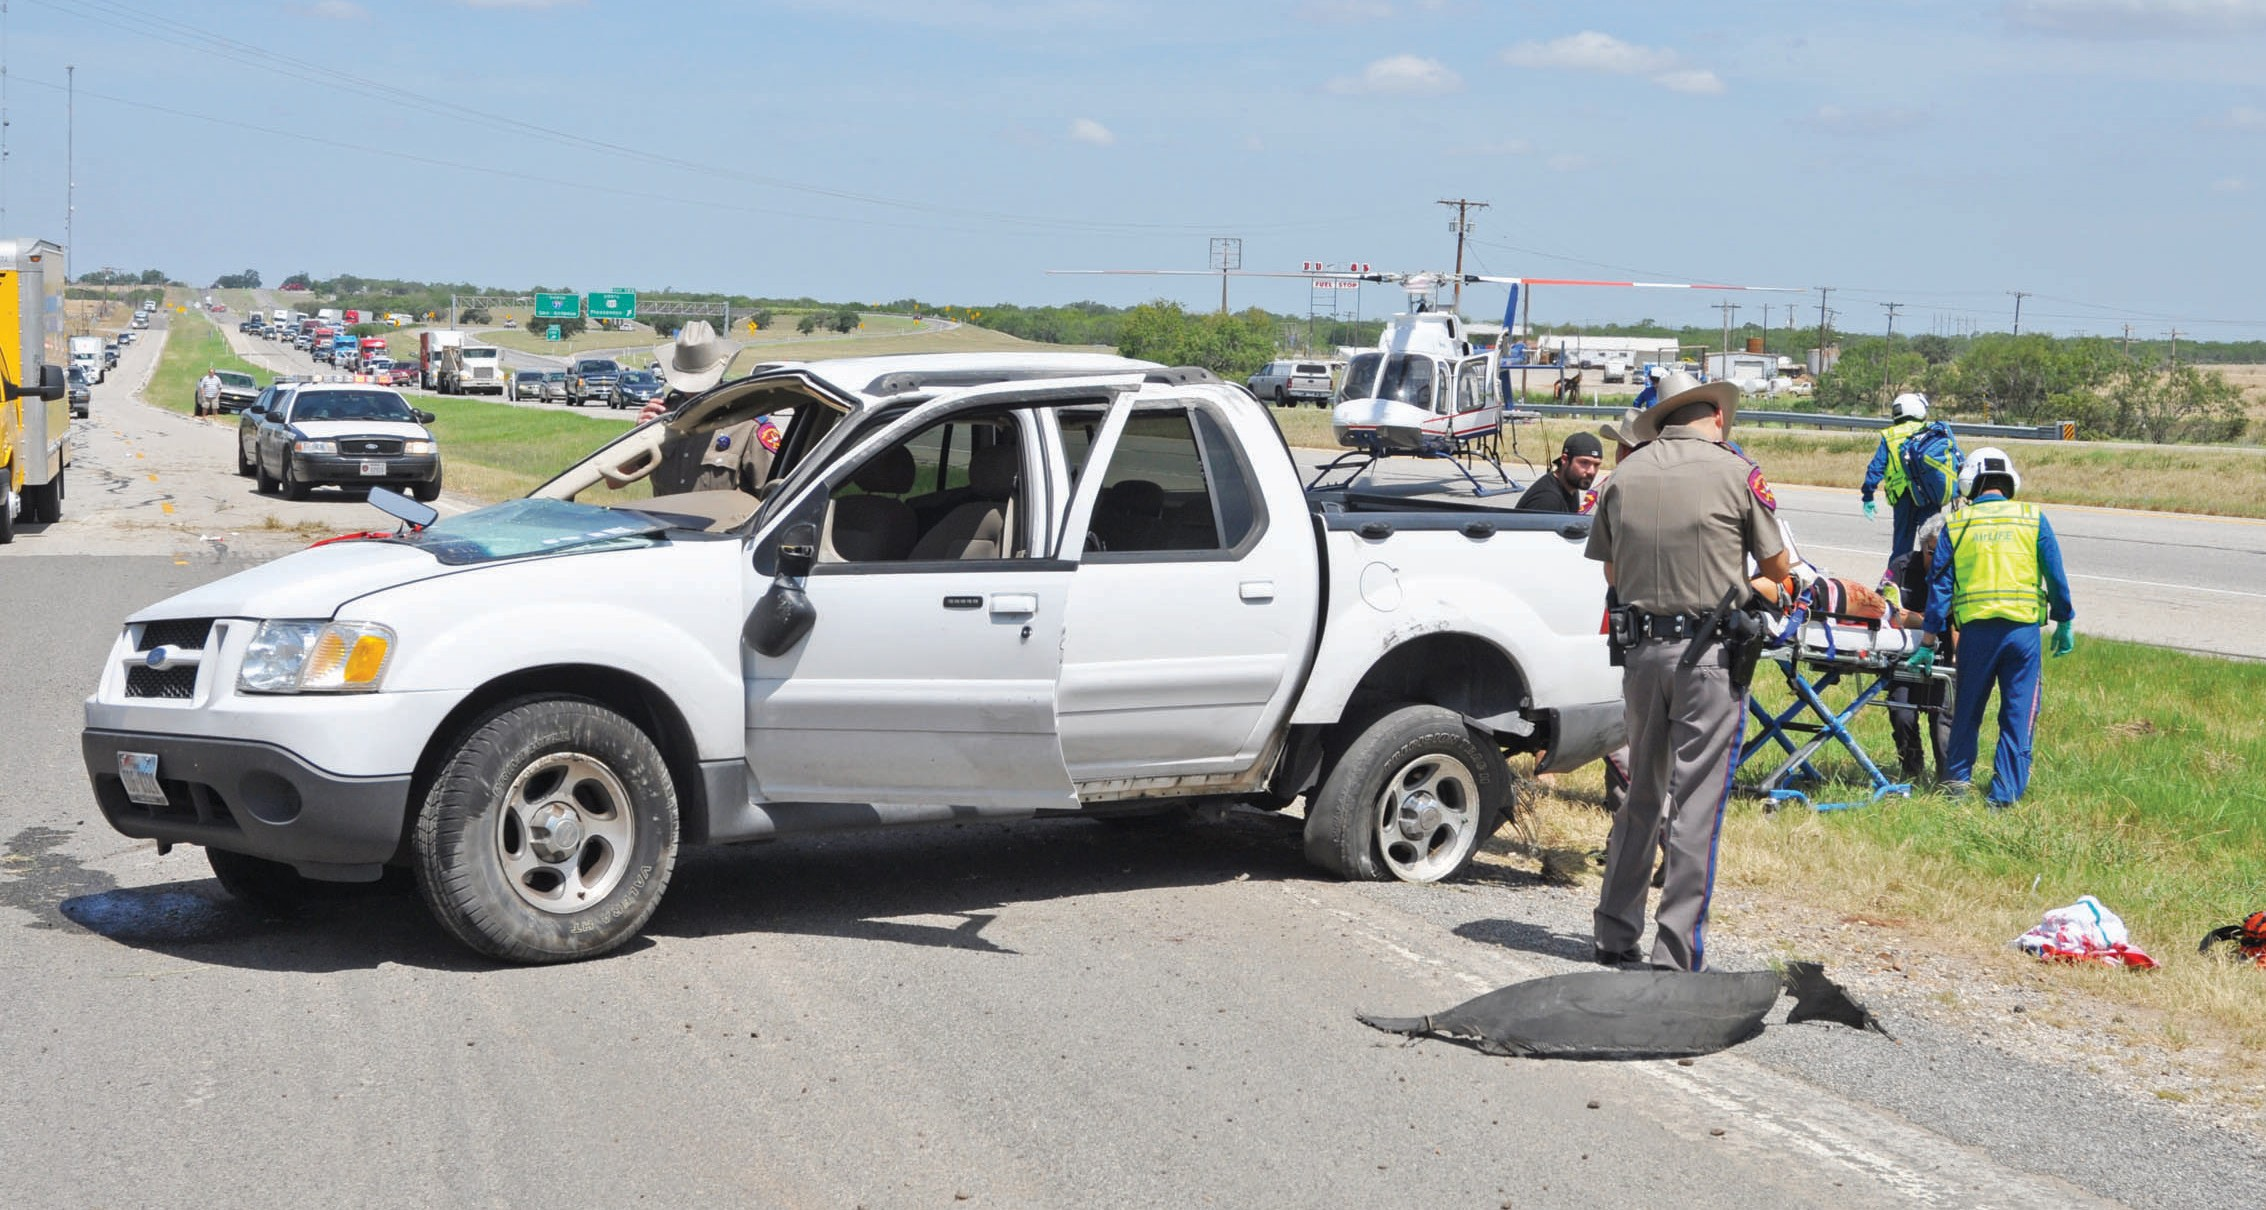 Around 11:00 am on Friday, August 2 this four door Ford pick up was going southbound on IH-37 when it rolled and landed near the access road. Airlife was dispatched for the female driver who suffered injuries to her arm and body.